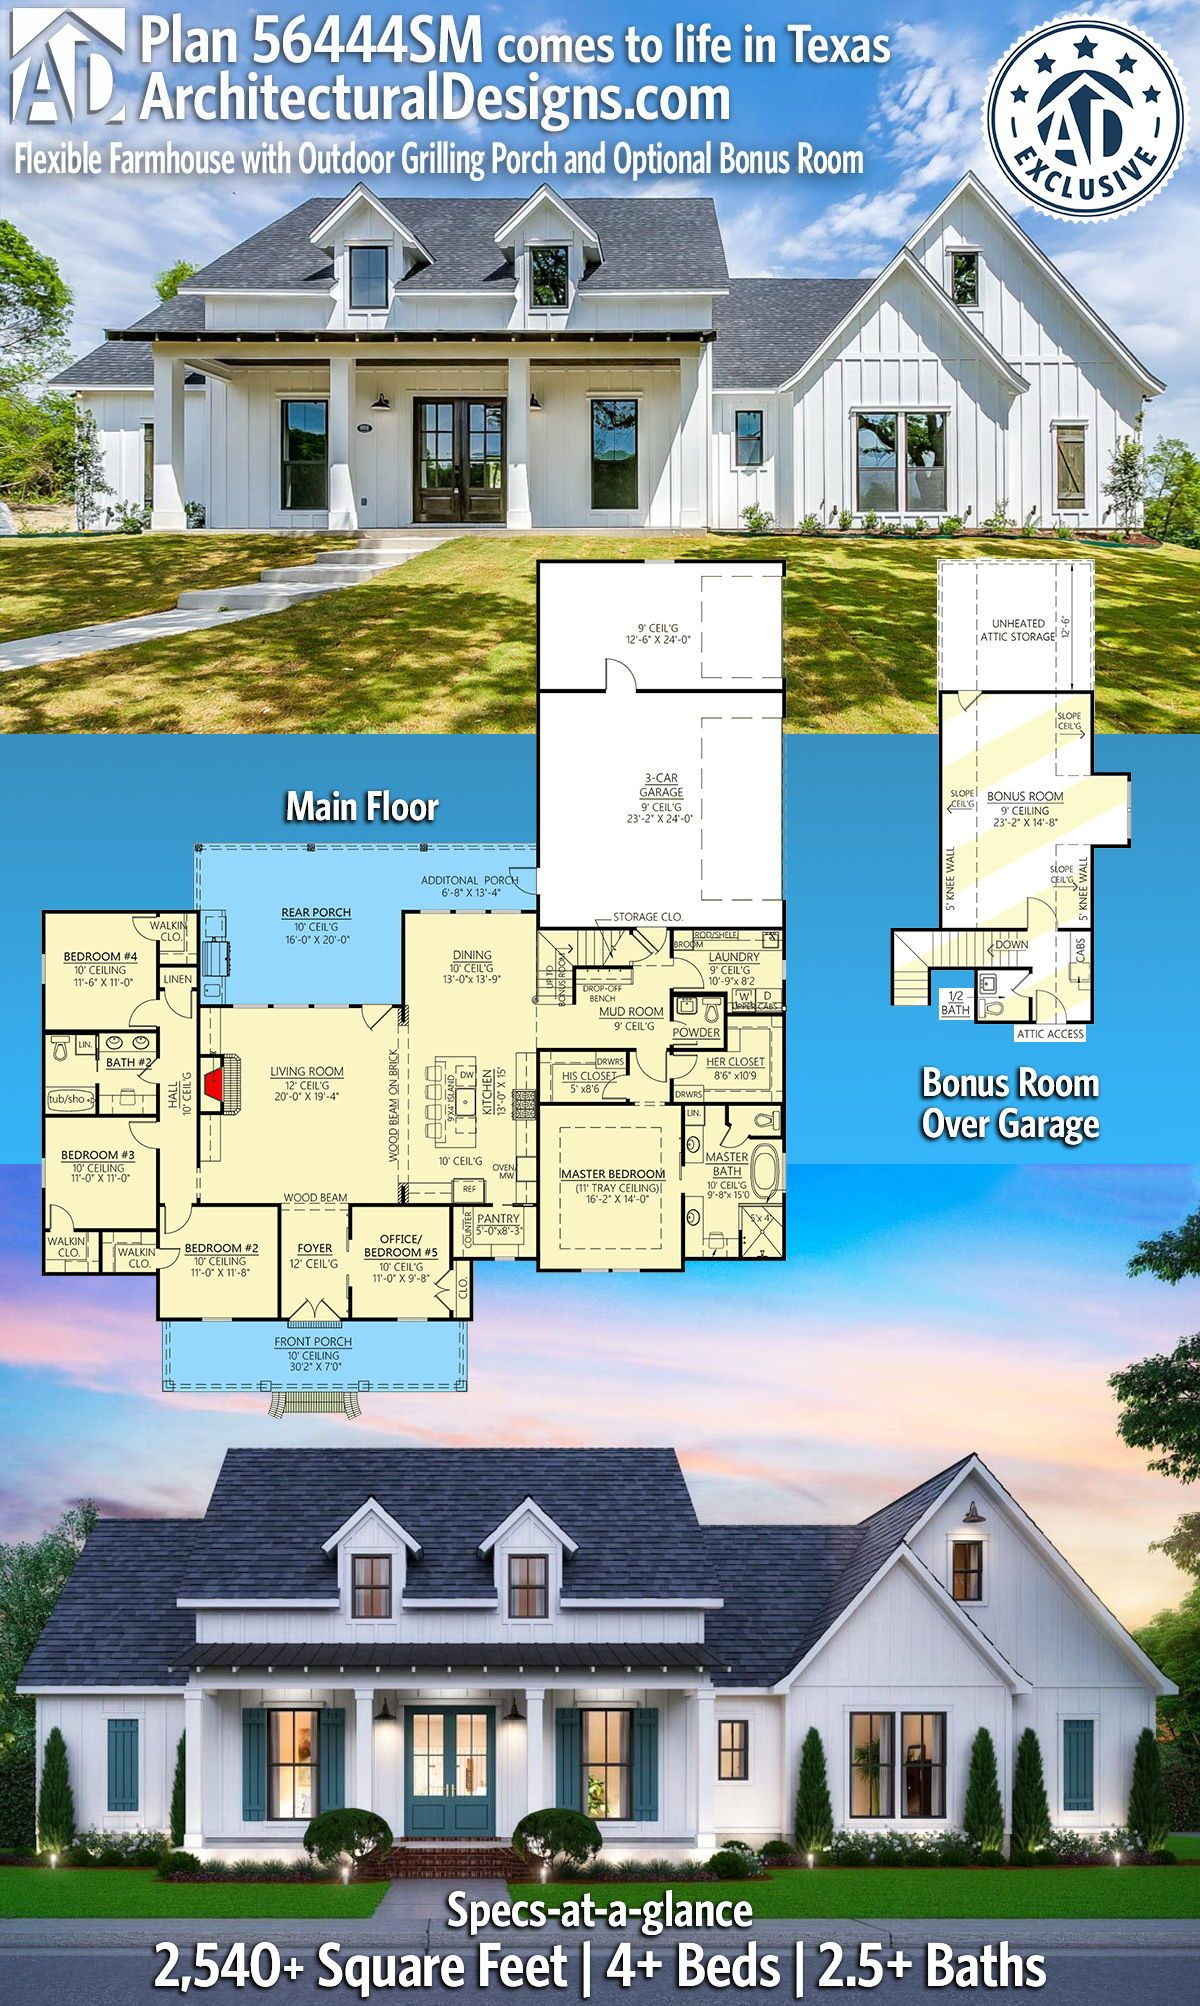 Plan 56444sm Flexible Farmhouse With Outdoor Grilling Porch And Optional Bonus Room In 2020 House Plans Farmhouse House Plans Build Your House